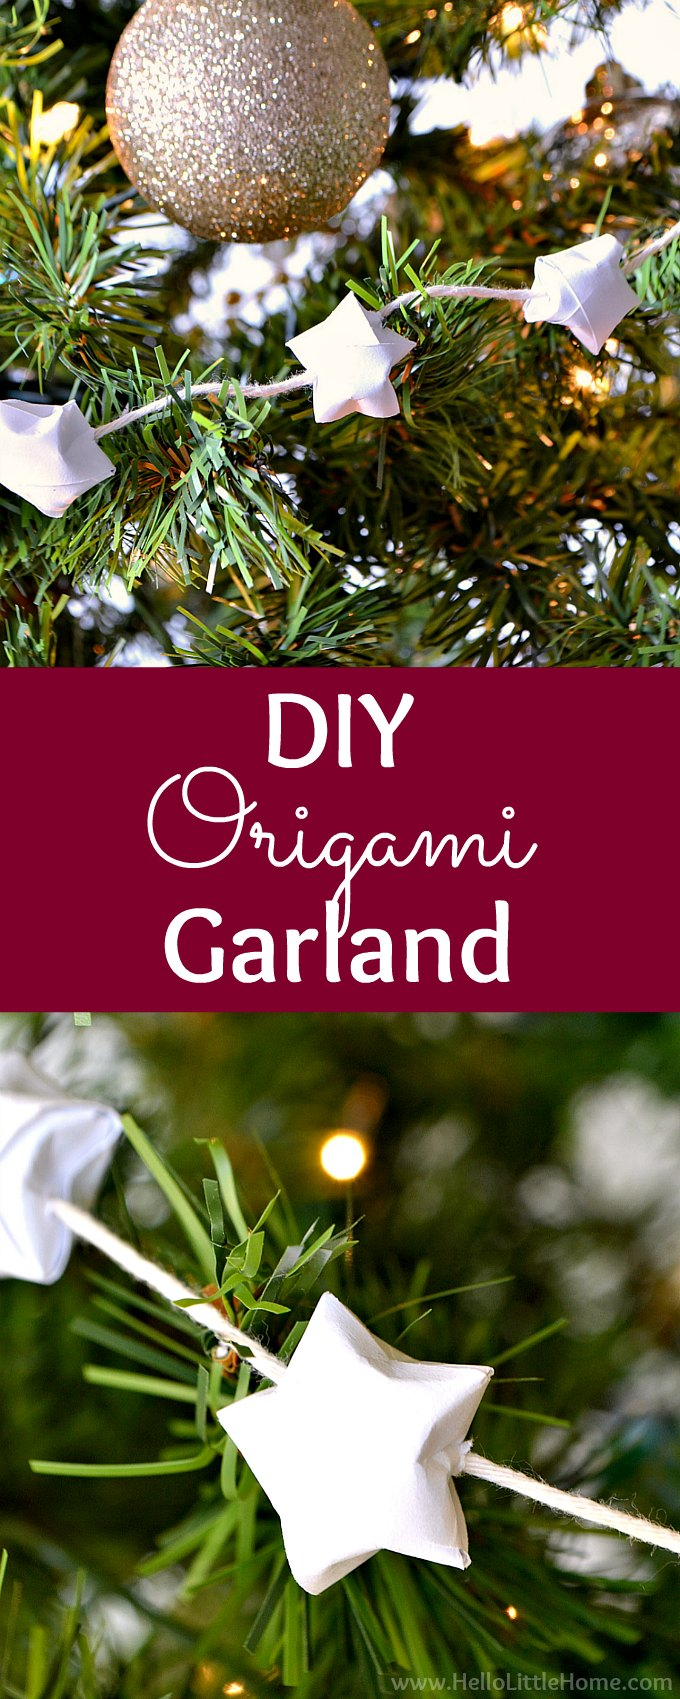 DIY Origami Lucky Star Garland! Learn how to fold Origami Lucky Stars. Simple step-by-step photo tutorial. Then, use the mini Origami Stars to make a garland. Perfect for decorating your home or Christmas trees. Once you learn how to make this DIY Christmas Tree Garland, you will be hooked. Such a fun and easy Christmas craft and origami pattern! | Hello Little Home #origami #origamipattern #origamiturtorial #origamistar #origamiluckystars #christmascrafts #christmastreegarland #papercrafting